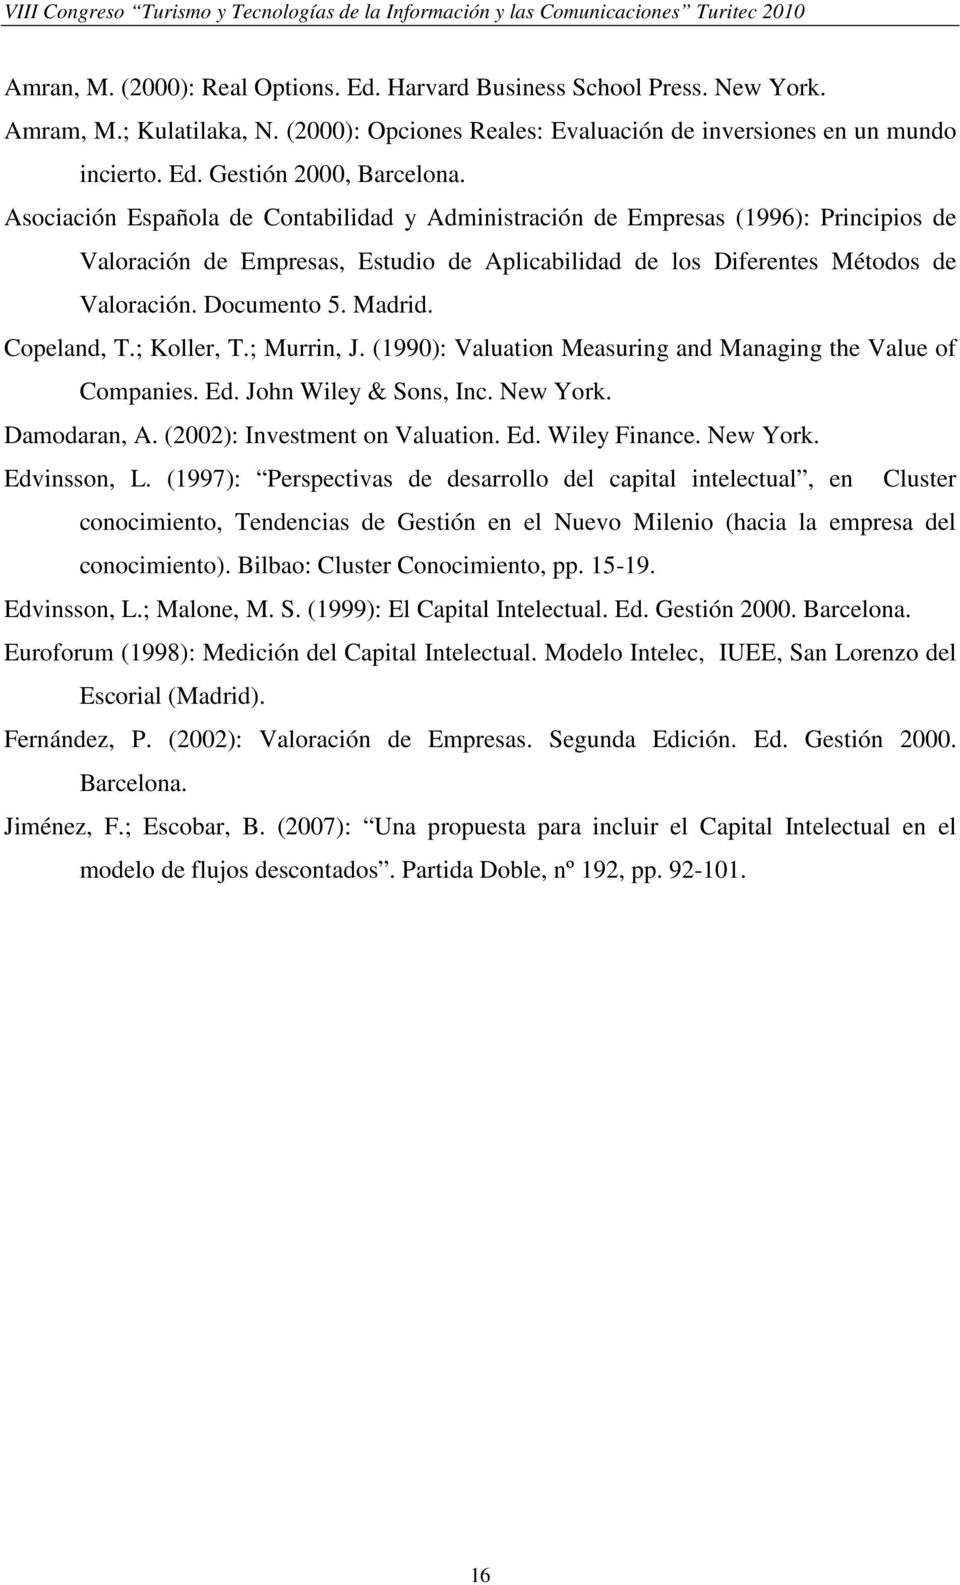 Copeland, T.; Koller, T.; Murrin, J. (1990): Valuation Measuring and Managing the Value of Companies. Ed. John Wiley & Sons, Inc. New York. Damodaran, A. (2002): Investment on Valuation. Ed. Wiley Finance.